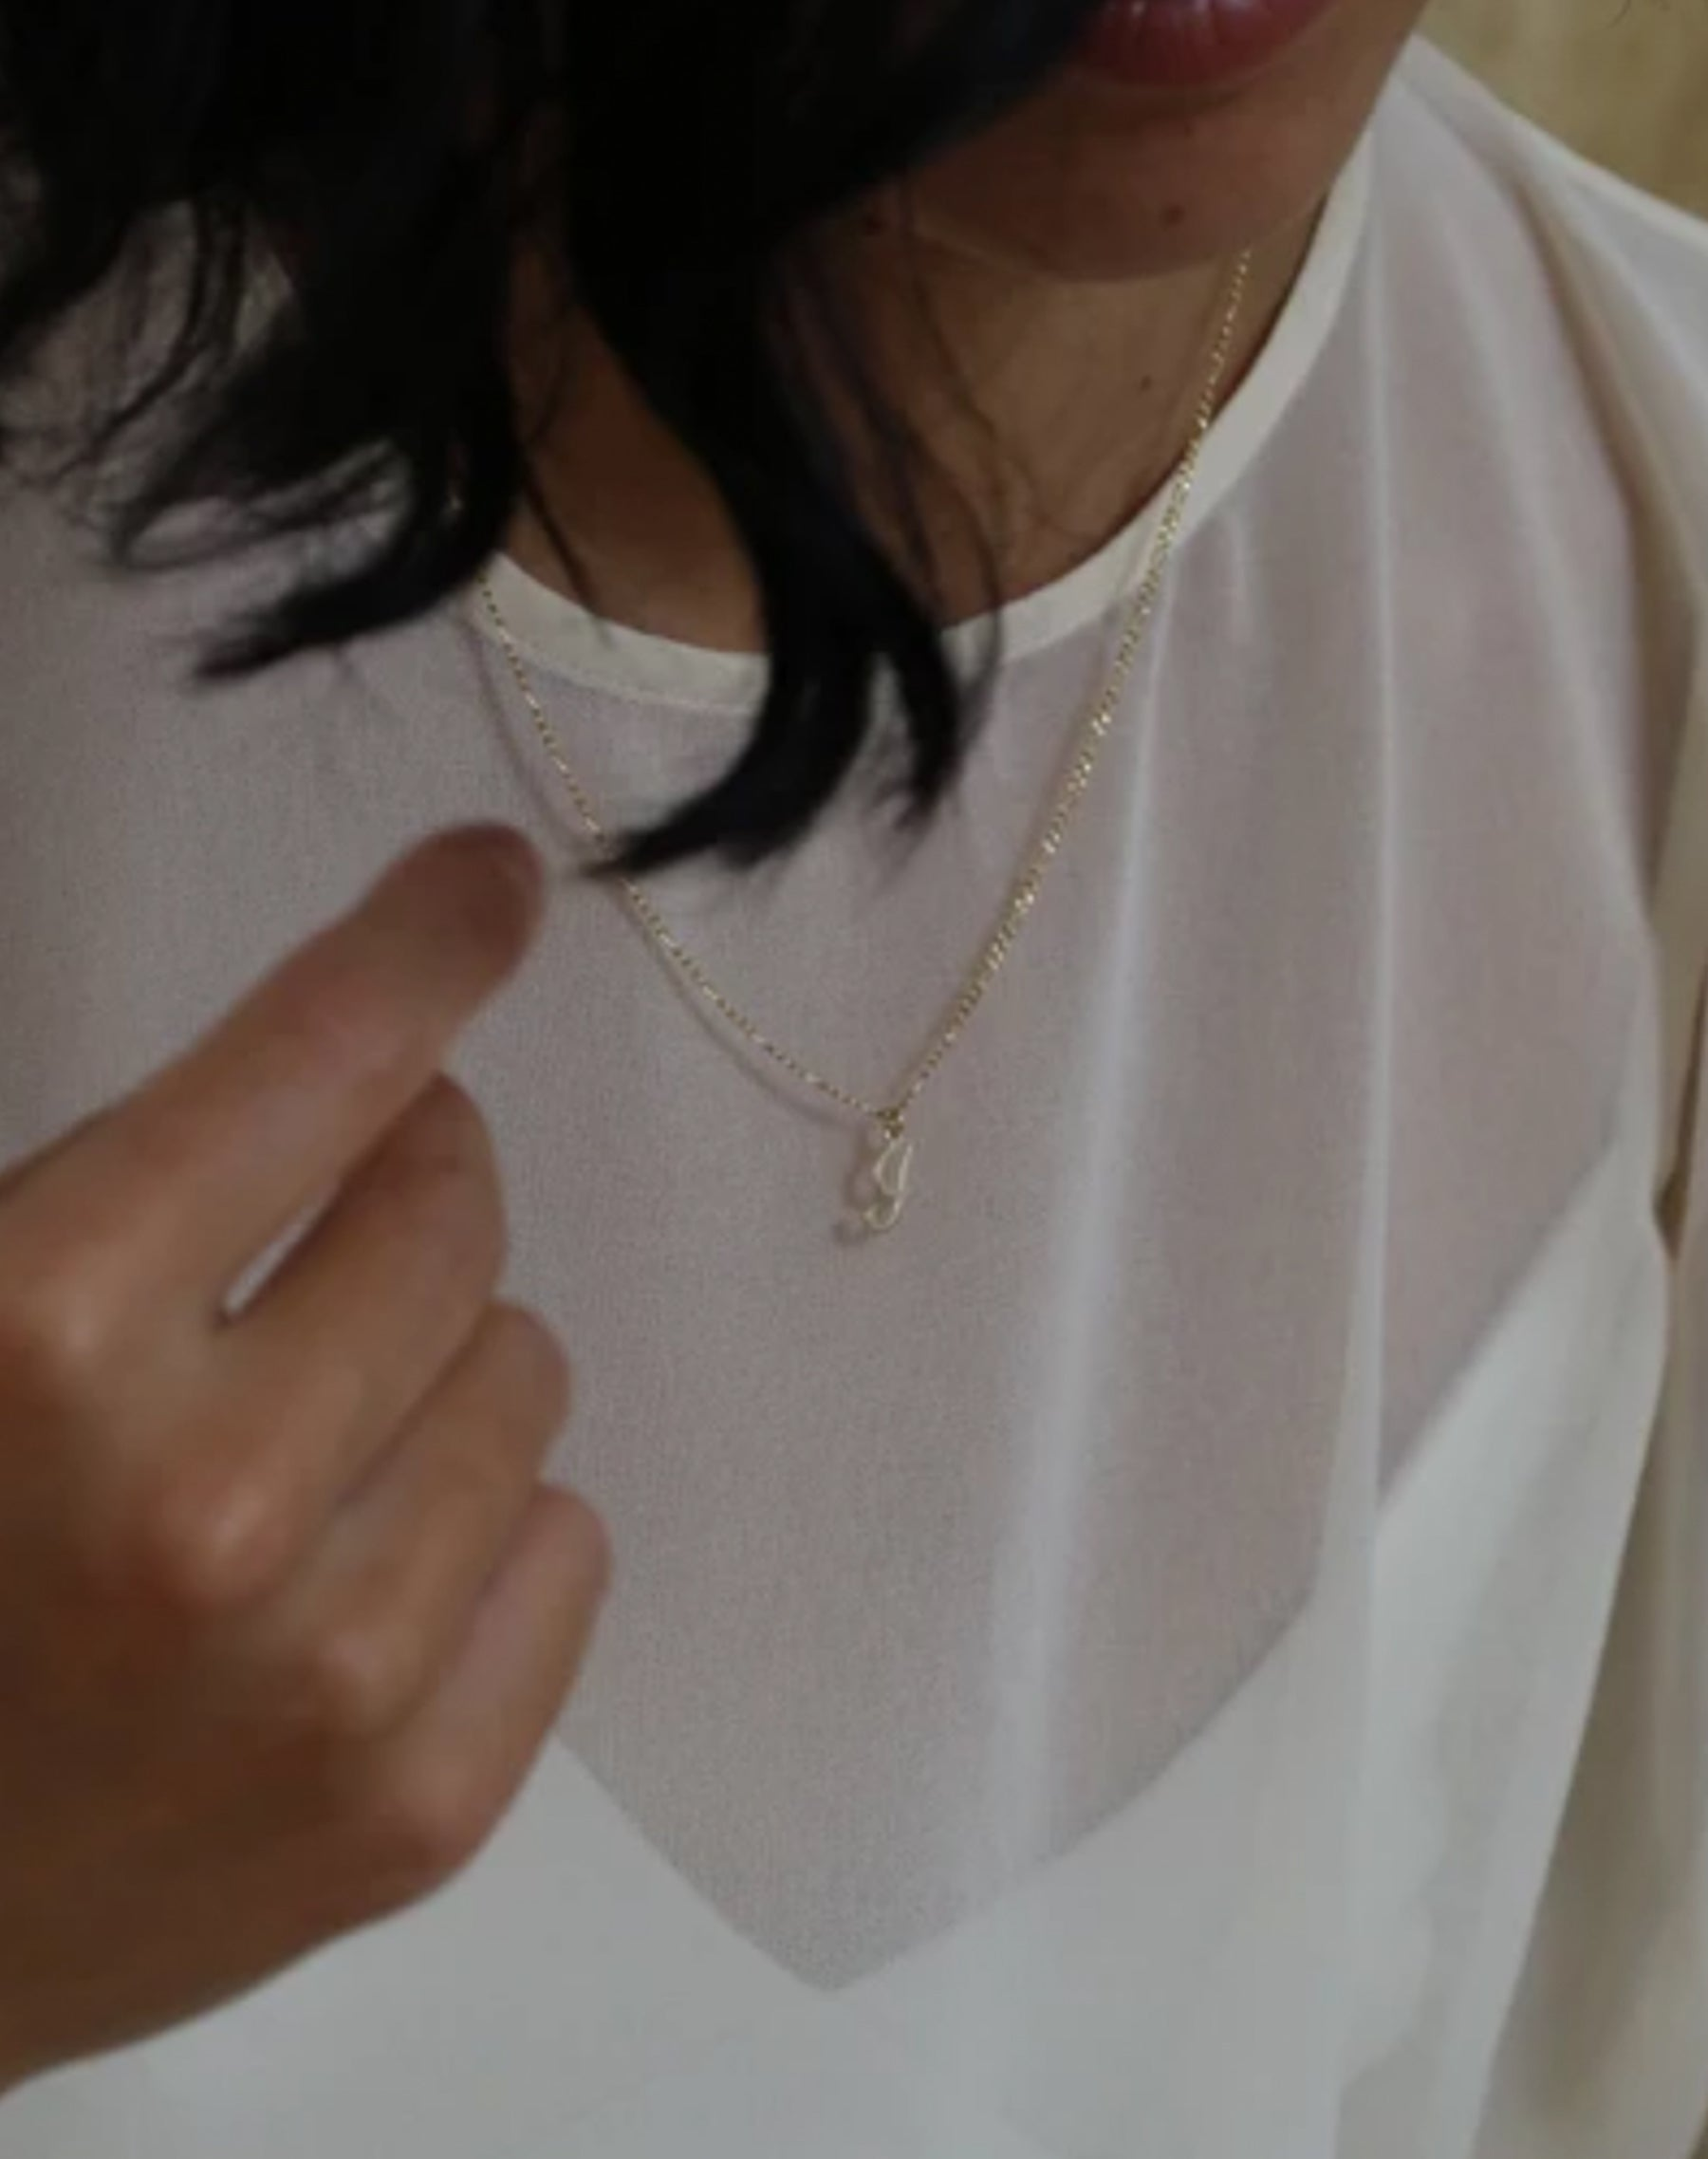 Photo of model wearing the initial necklace in gold figaro chain by Lisbeth.